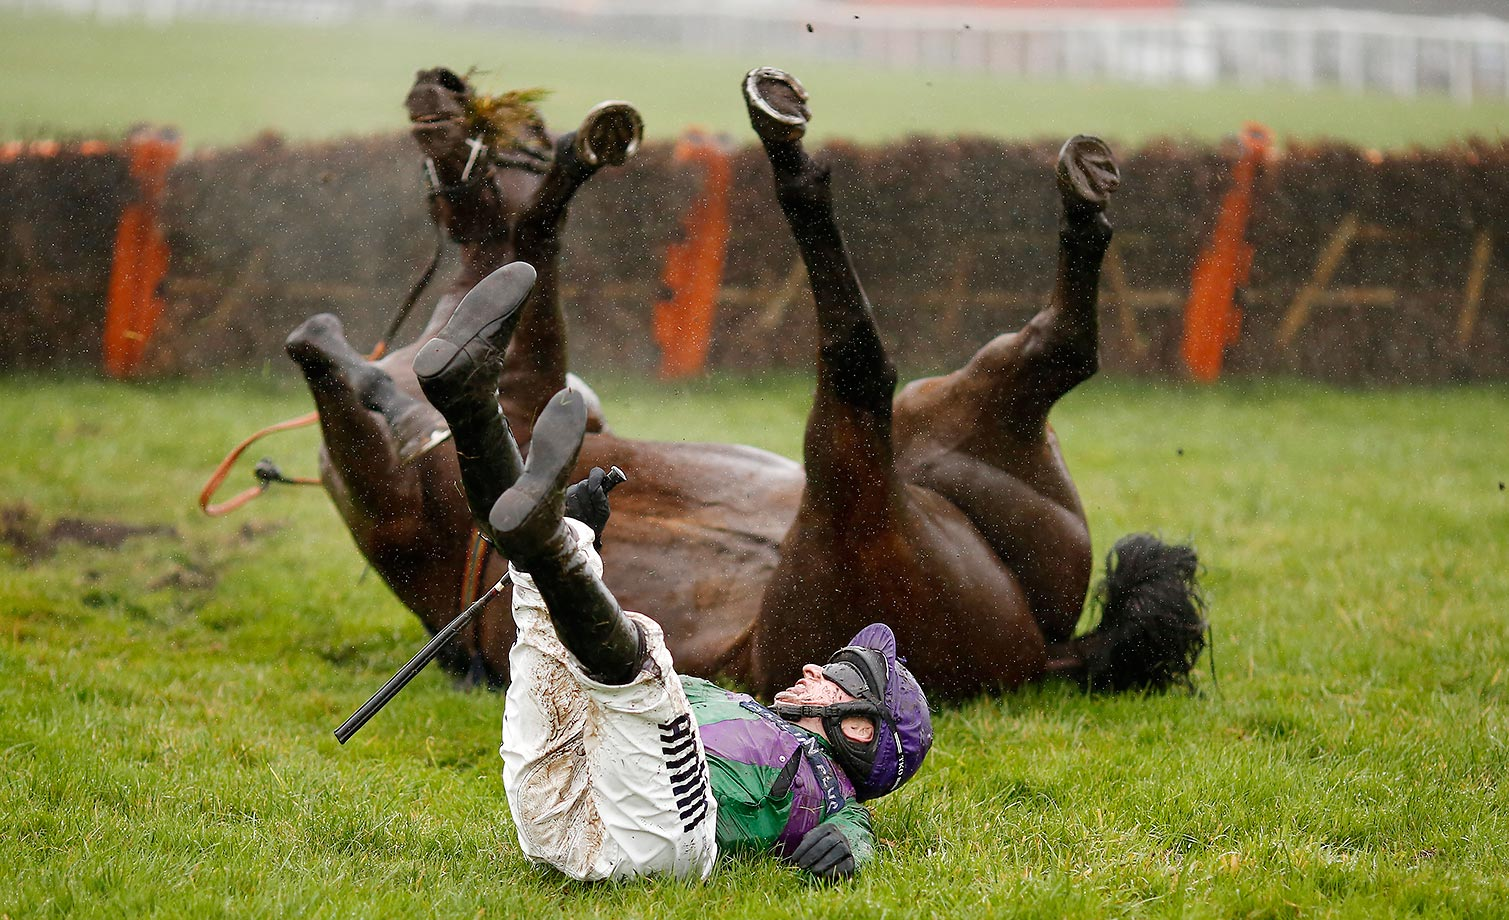 Tom O'Brien falls from Gala Ball at Exeter racecourse.